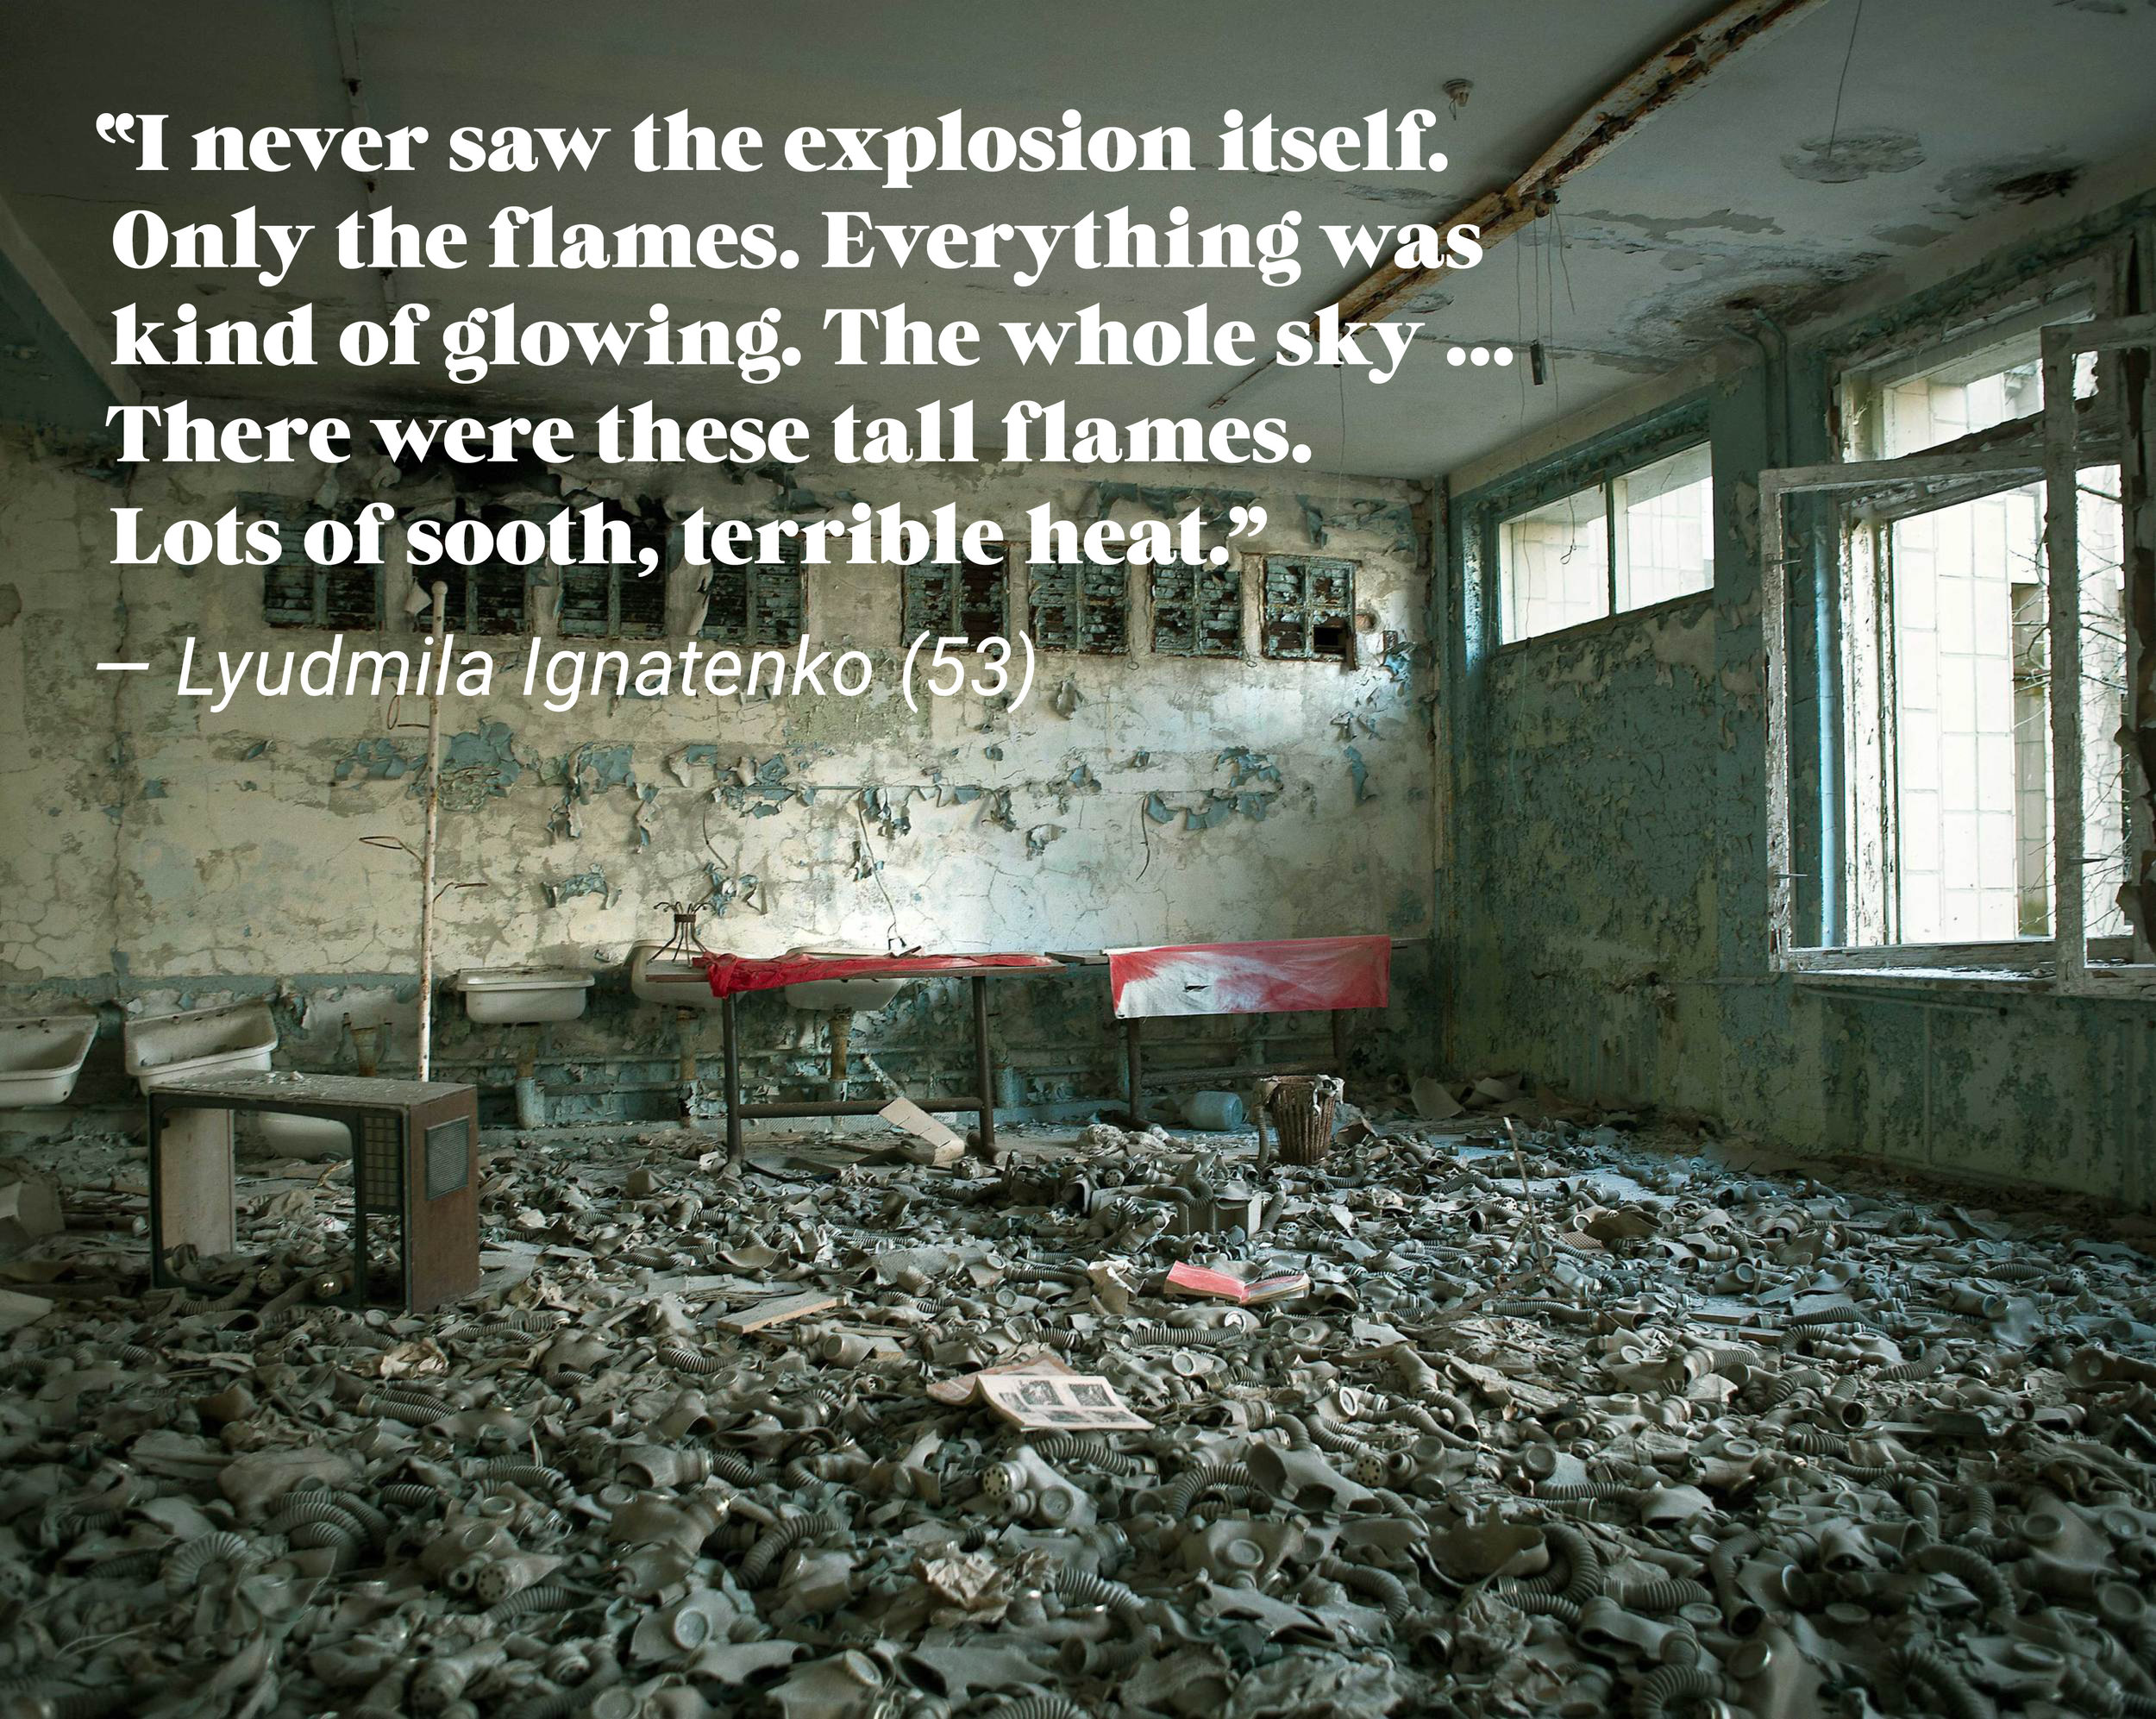 ⎯ Gasmasks at School nr. 3 in Pripyat in the Chernobyl Exclusion Zone.